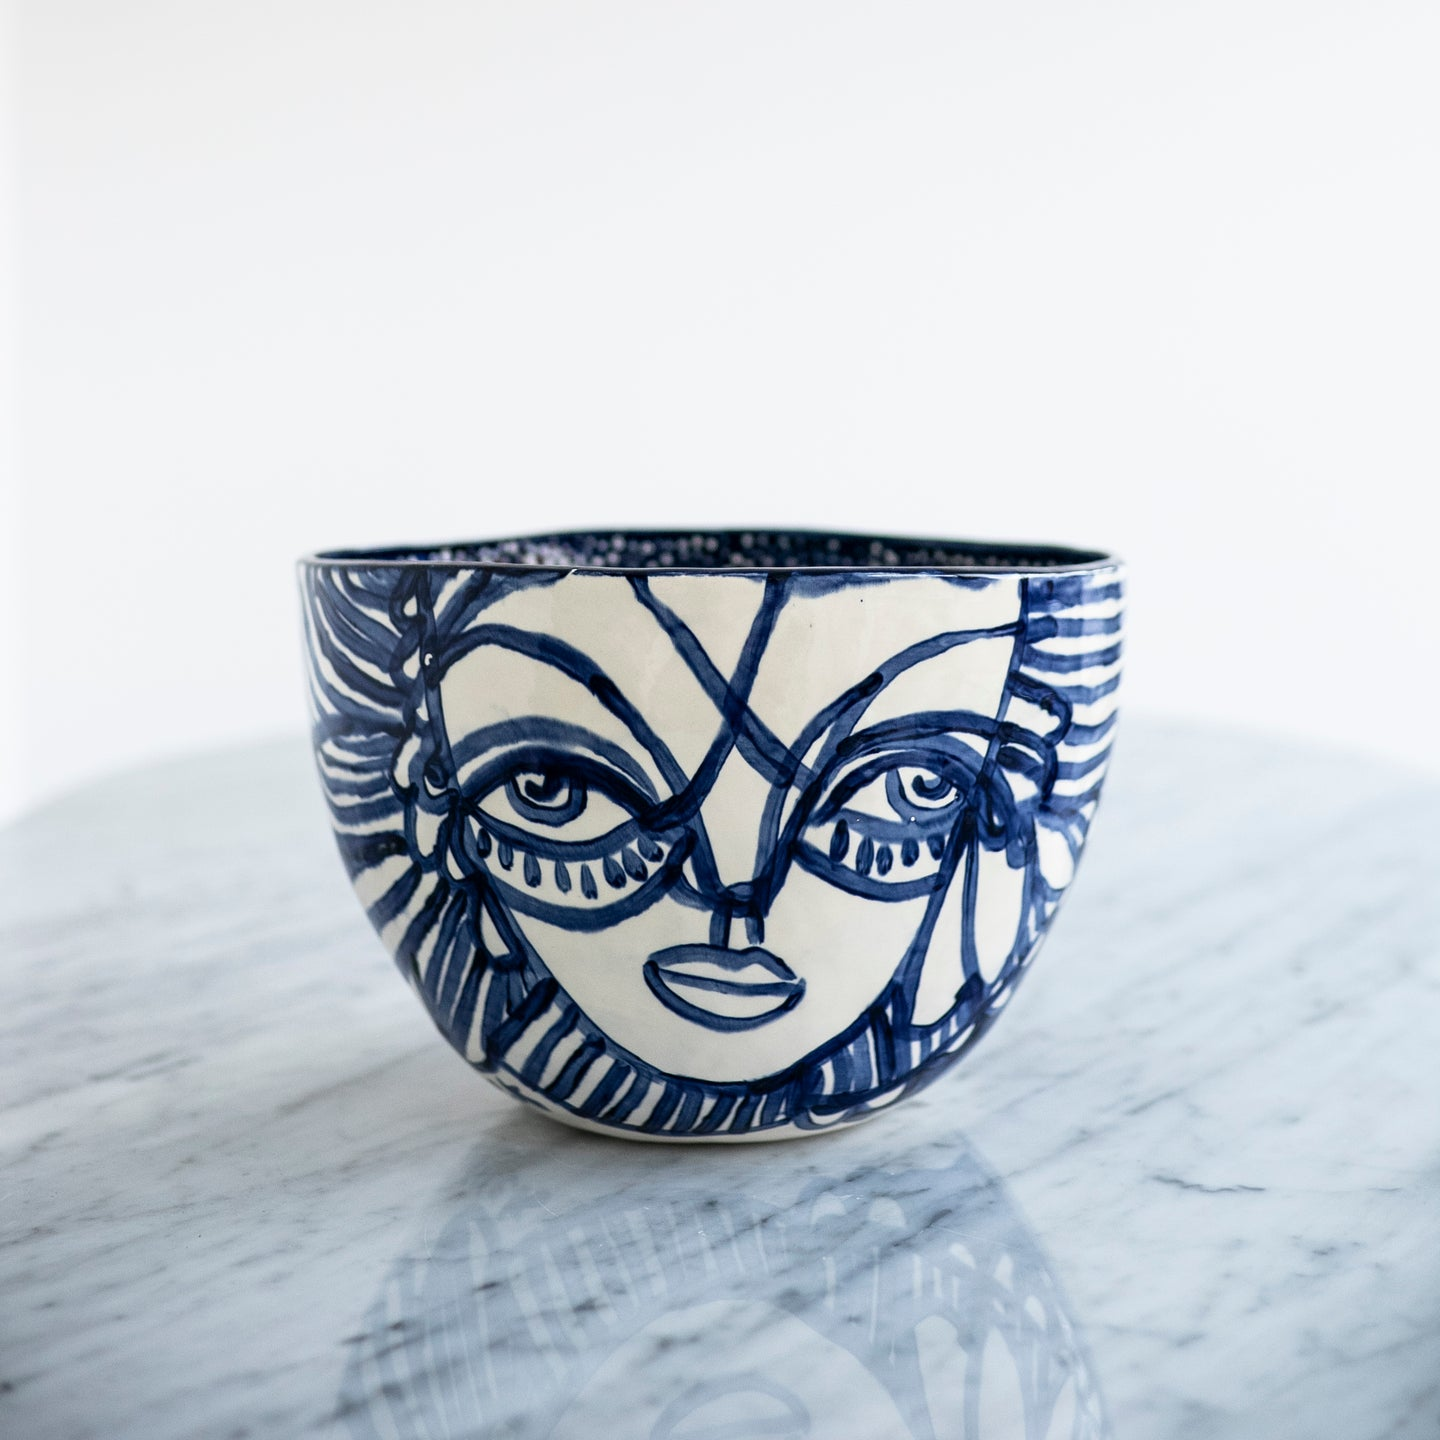 The Bowl Journal - Ceramic Bowl #55